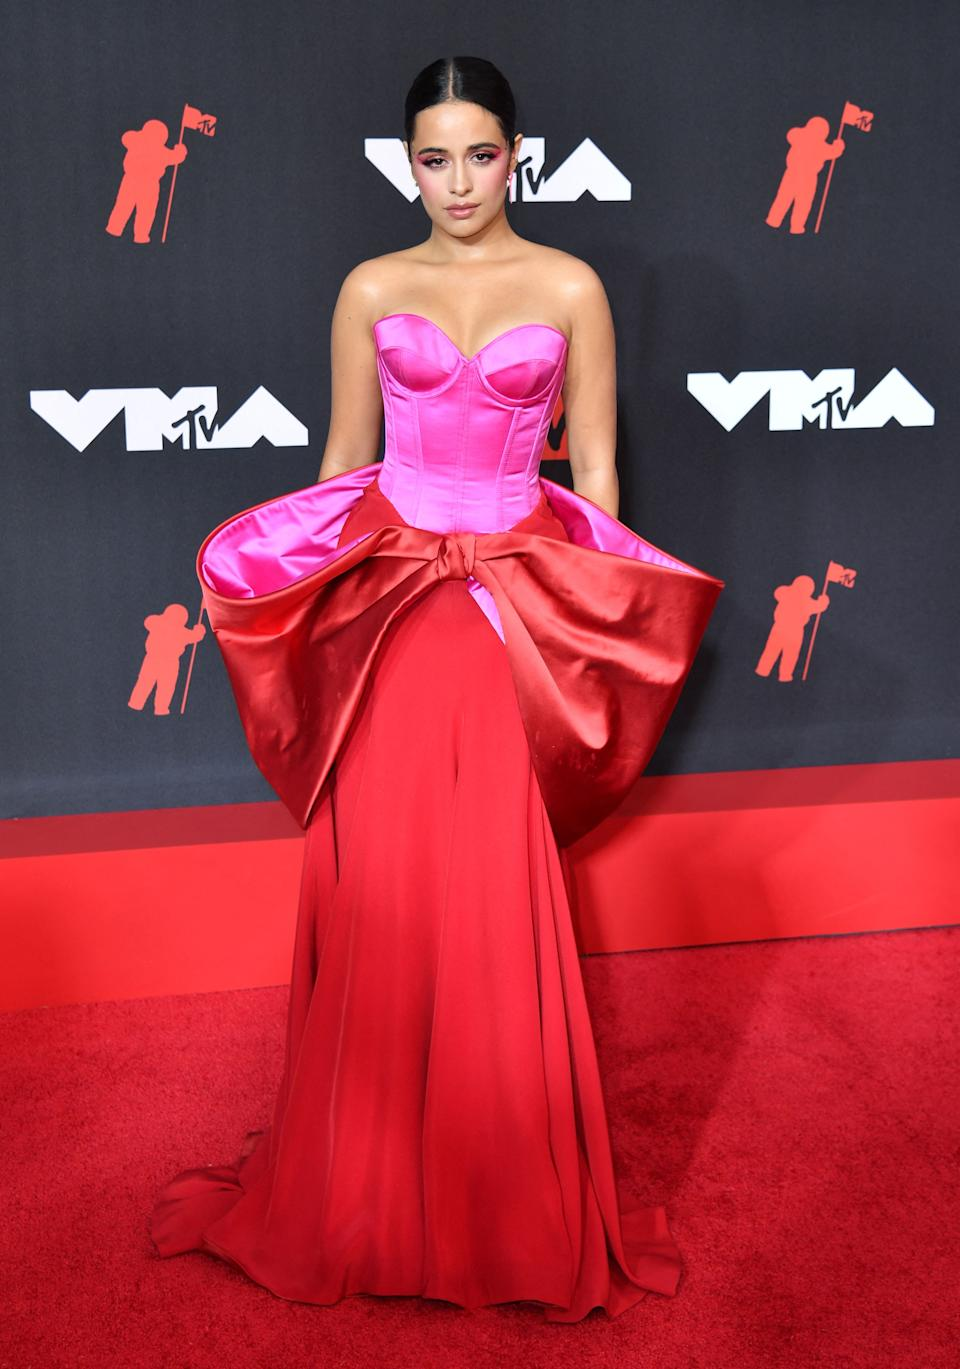 Camila Cabello arrives for the 2021 MTV Video Music Awards